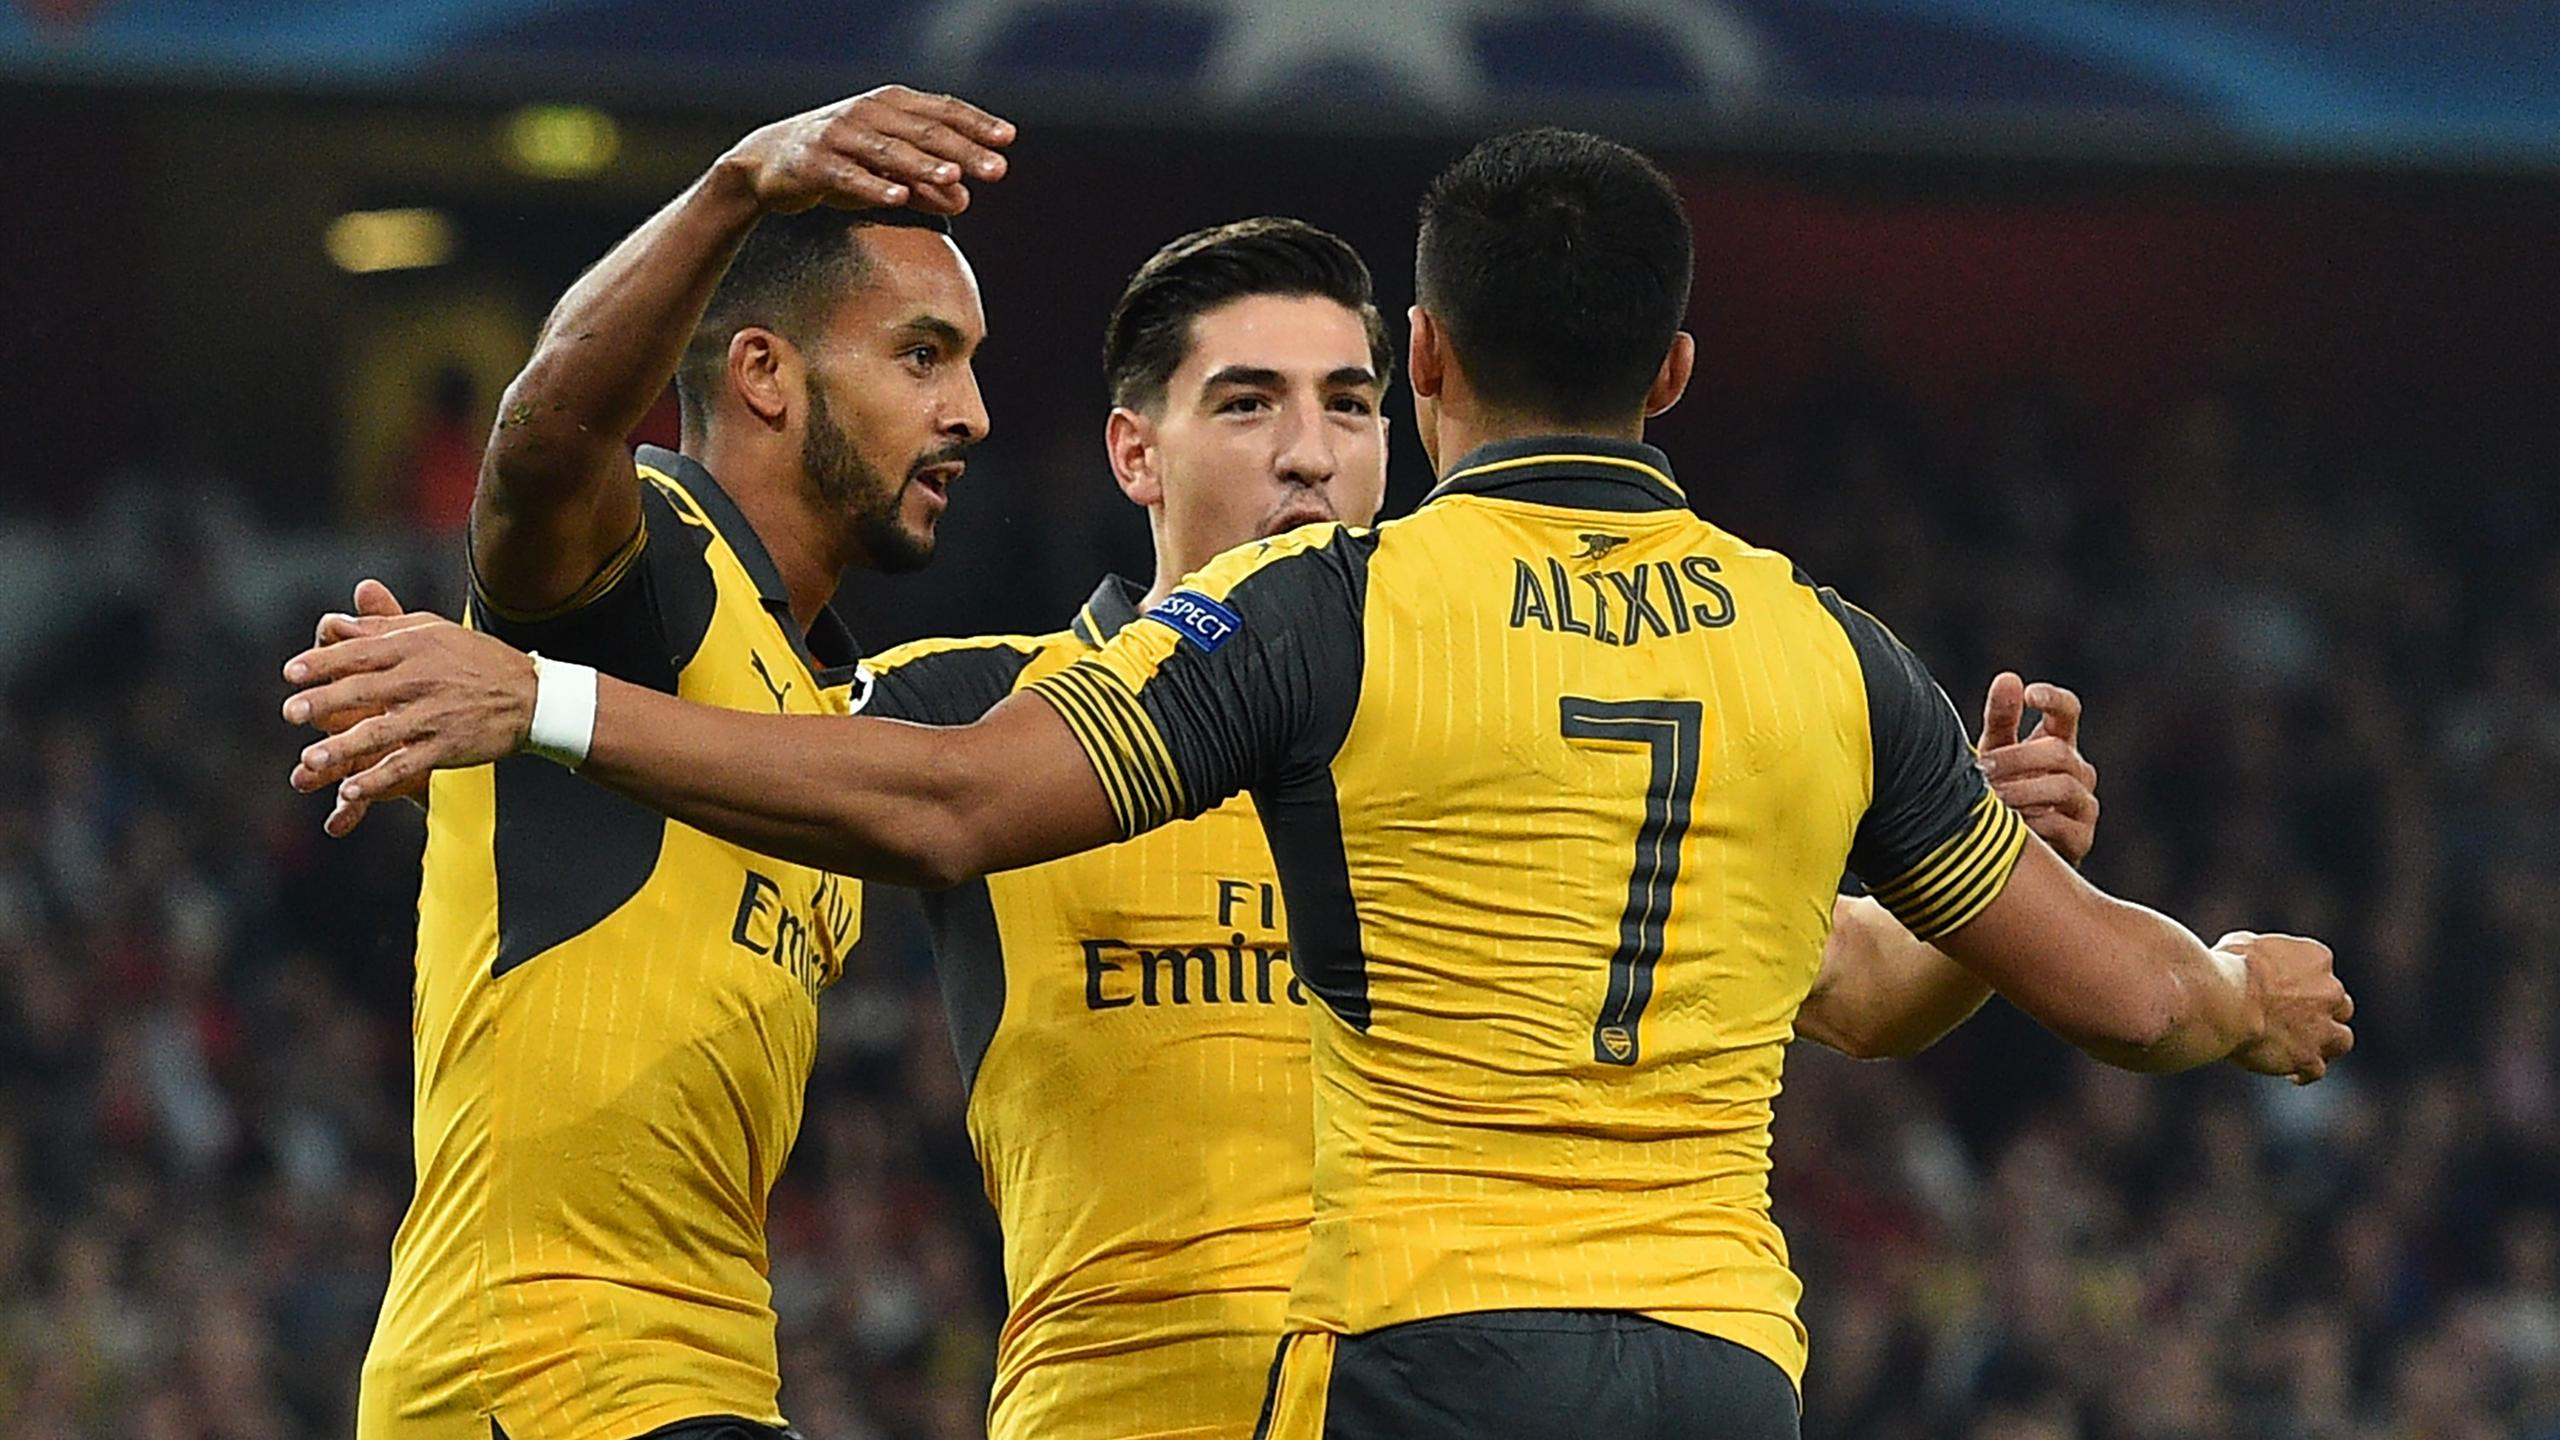 Arsenal's English midfielder Theo Walcott (L) celebrates with Arsenal's Chilean striker Alexis Sanchez (R) and Arsenal's Spanish defender Hector Bellerin